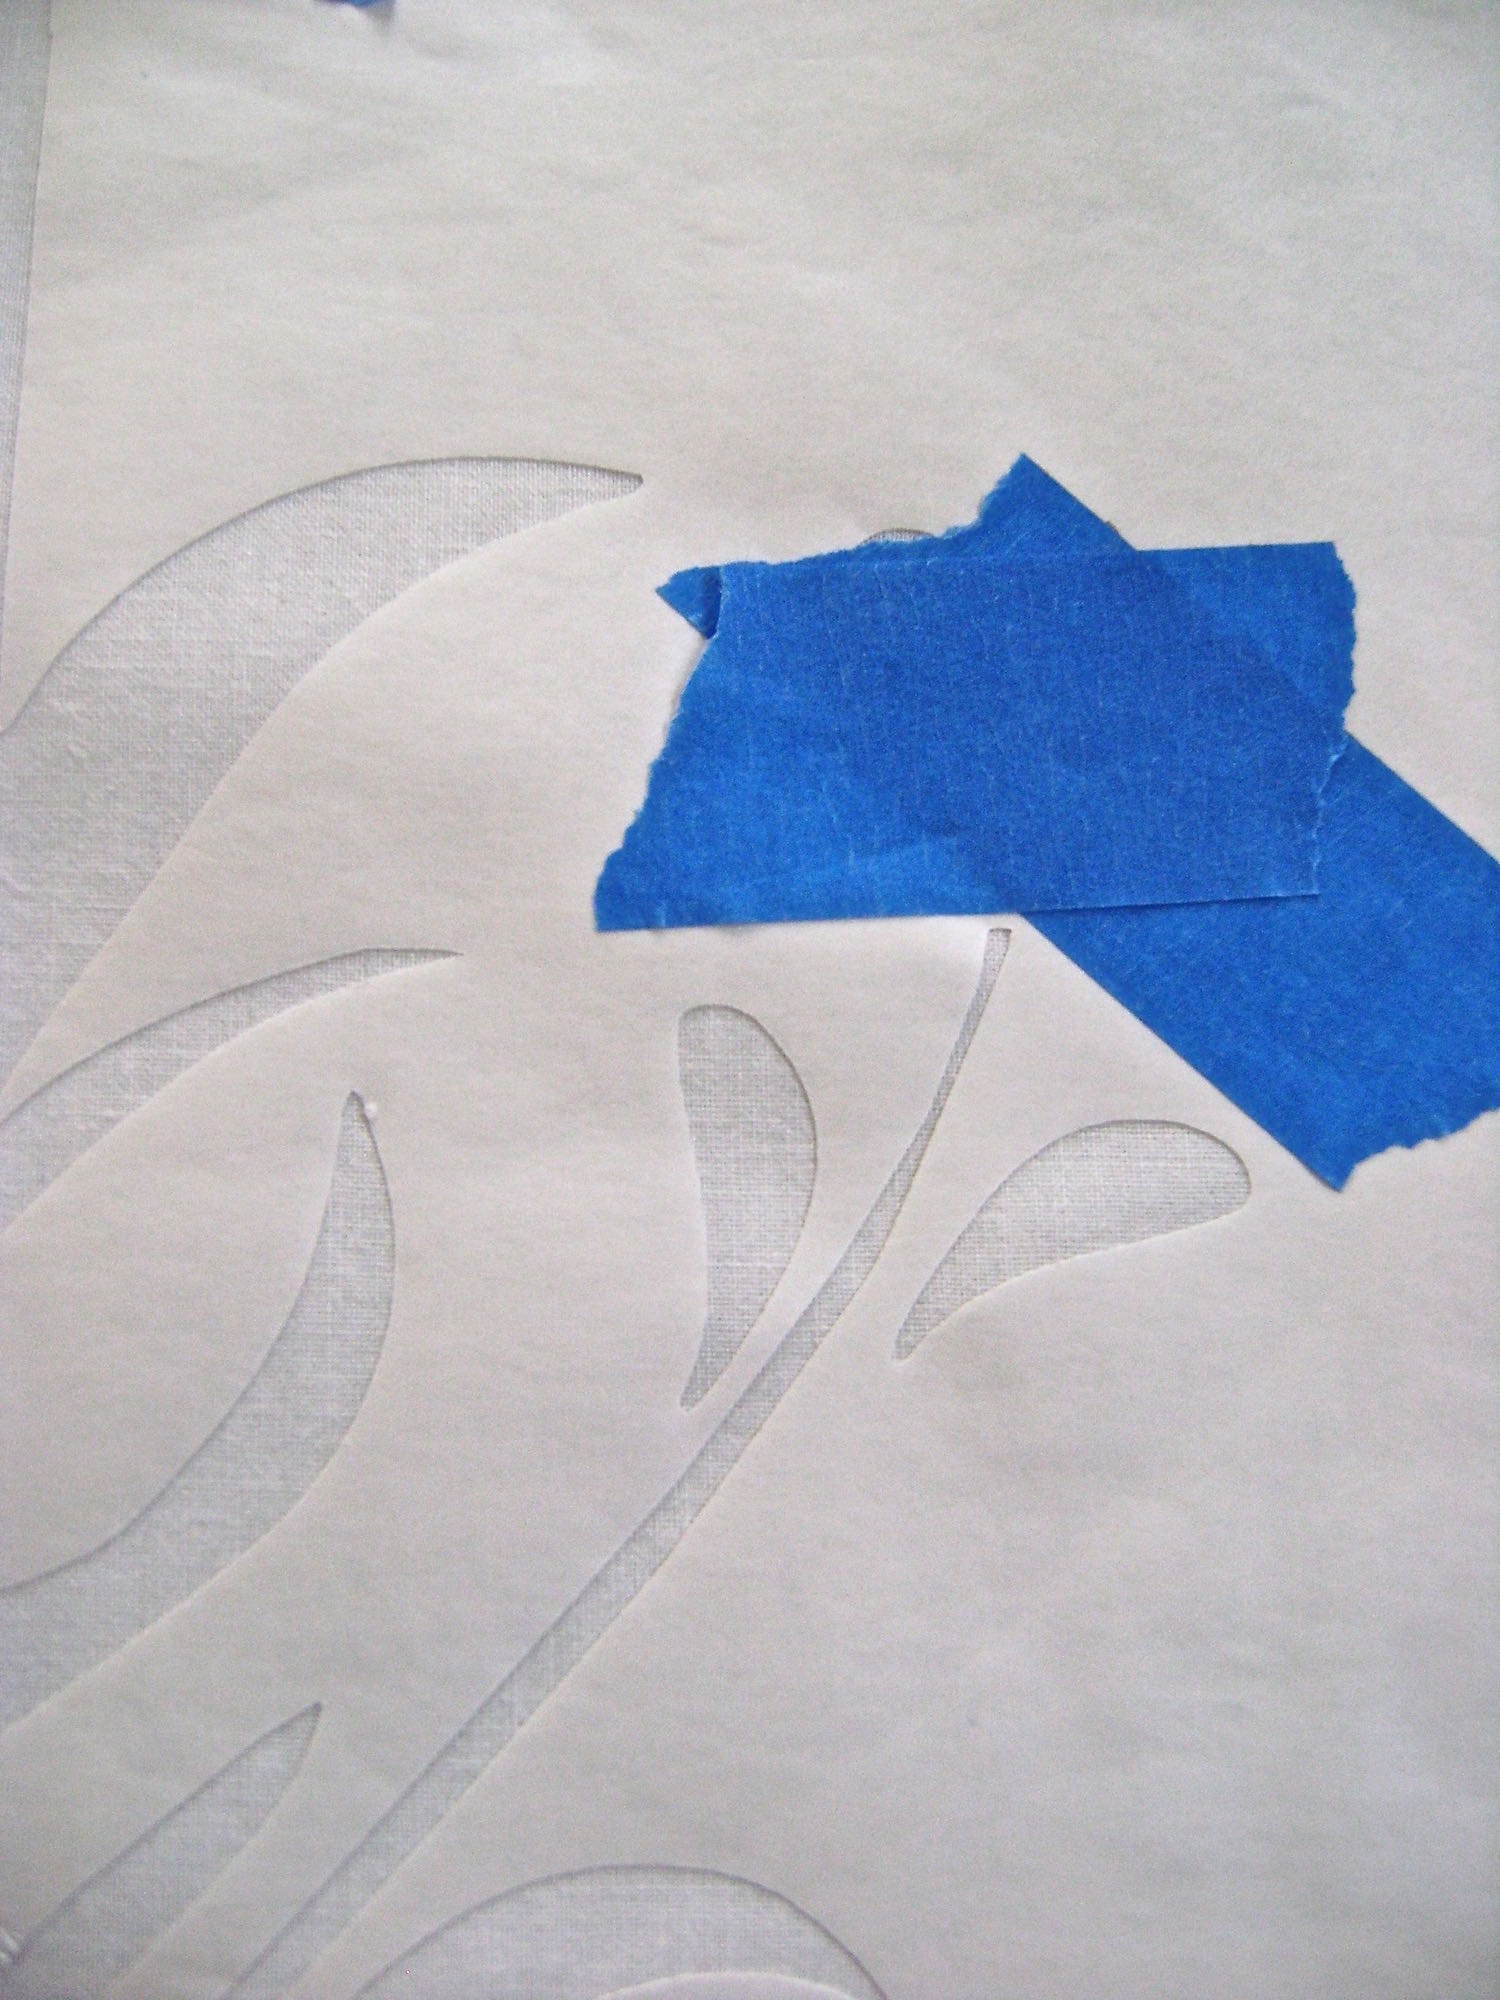 """step 6 - With a dry iron set on """"cotton"""", press the Freezer Paper to the white fabric. Be sure all design edges adhere to the fabric. Place painters tape over the flowers."""